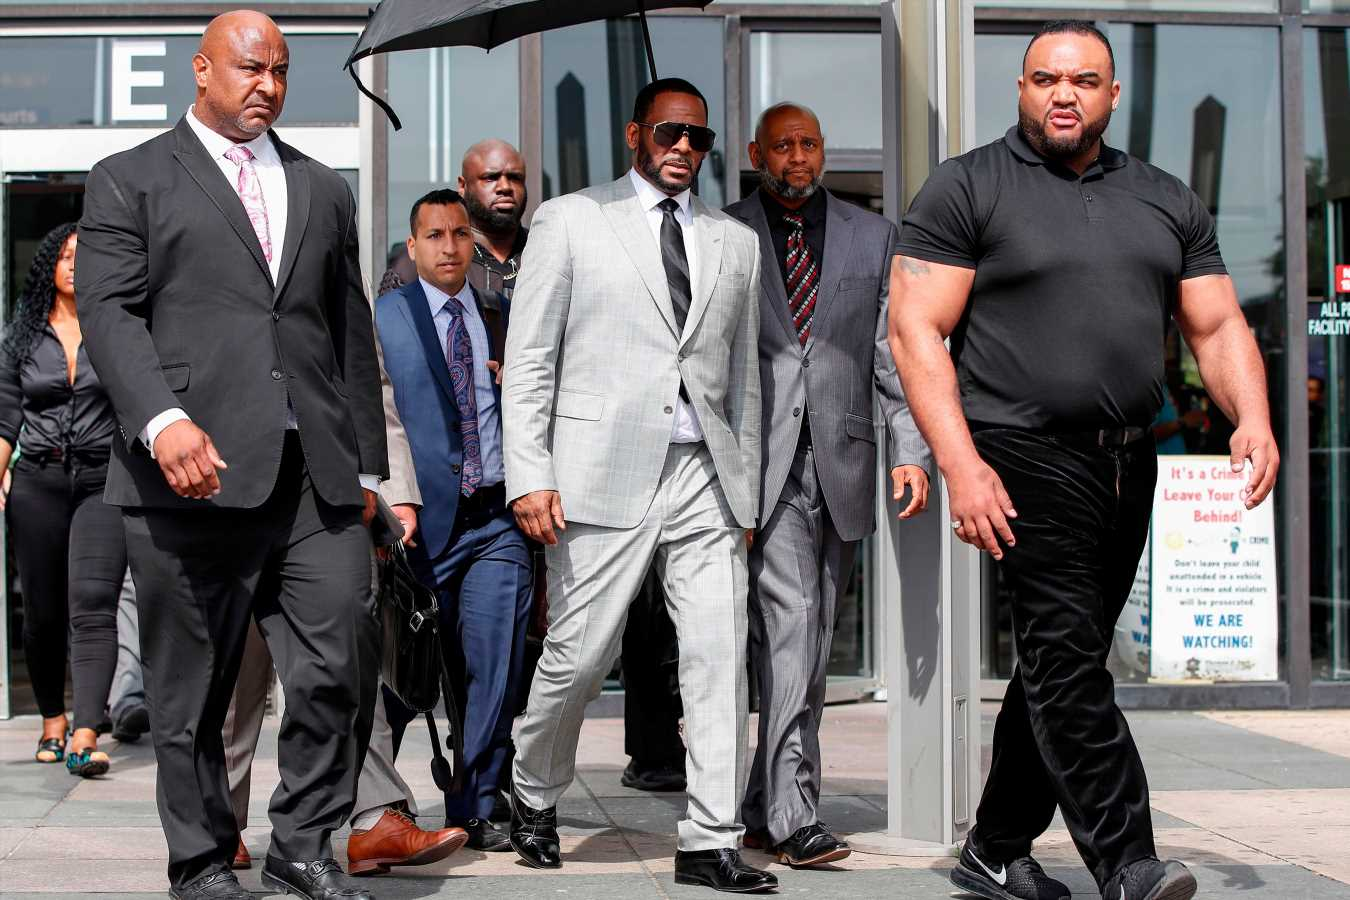 R. Kelly Pleads Not Guilty to 11 New Sexual Assault and Abuse Charges in Chicago Court